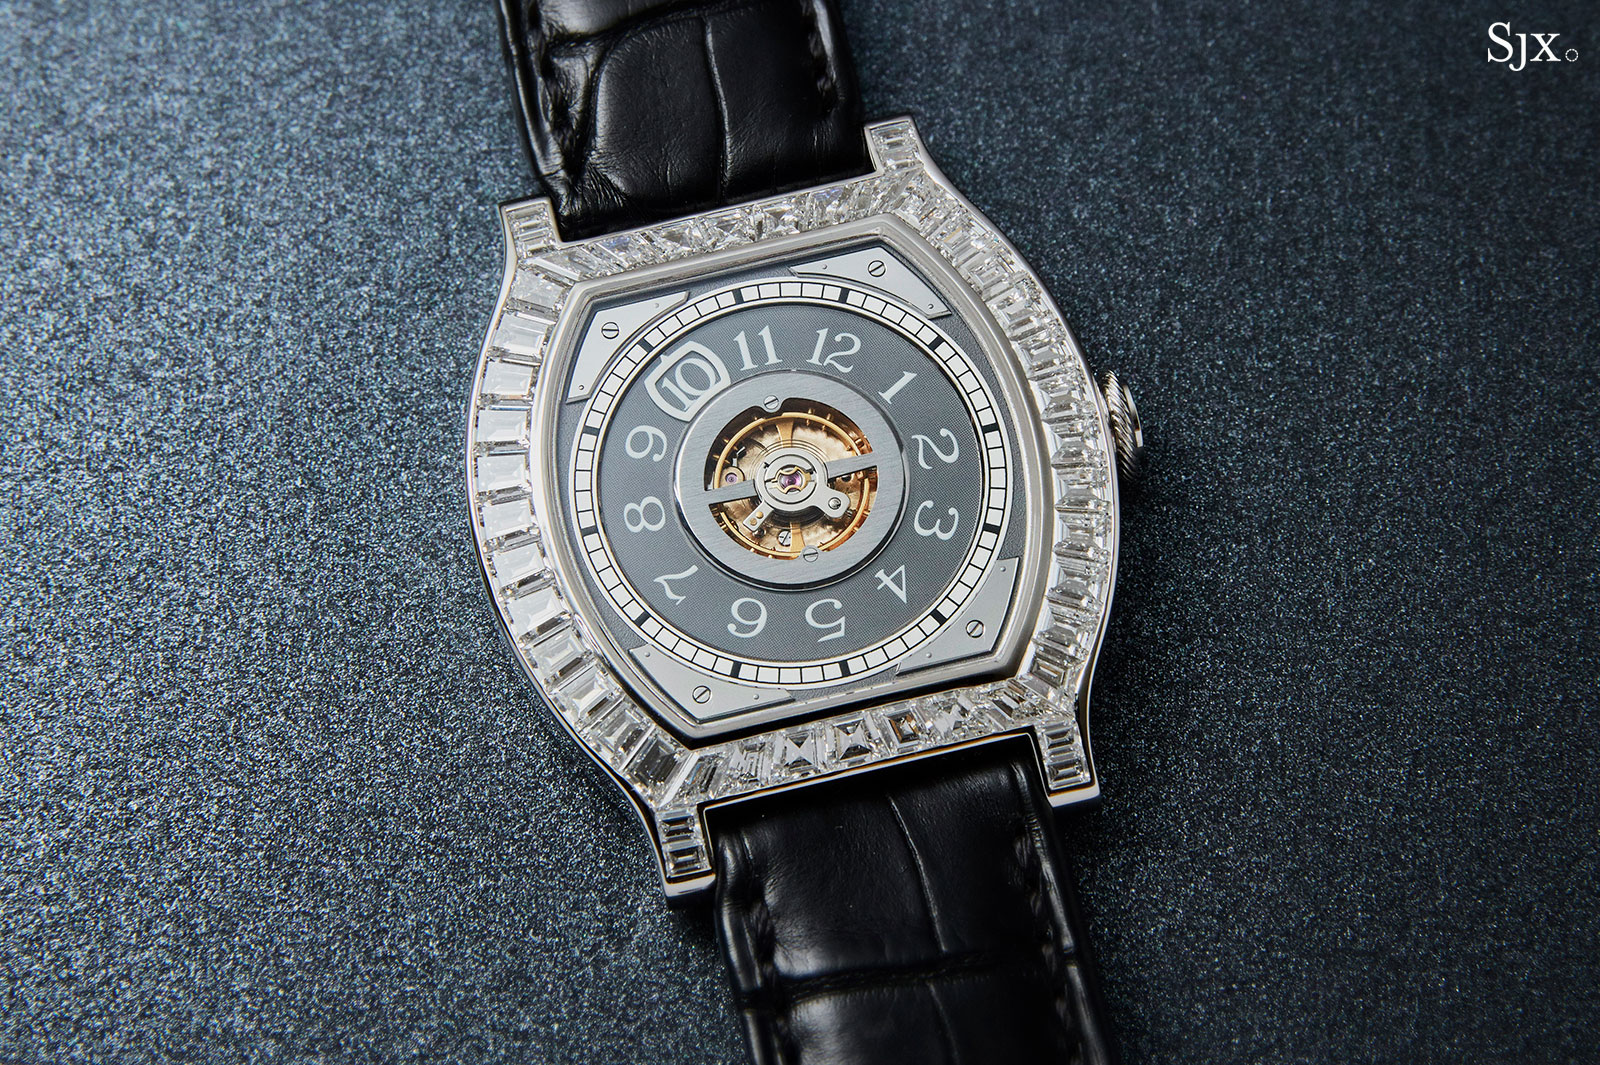 FP Journe Vagabondage I diamonds 1